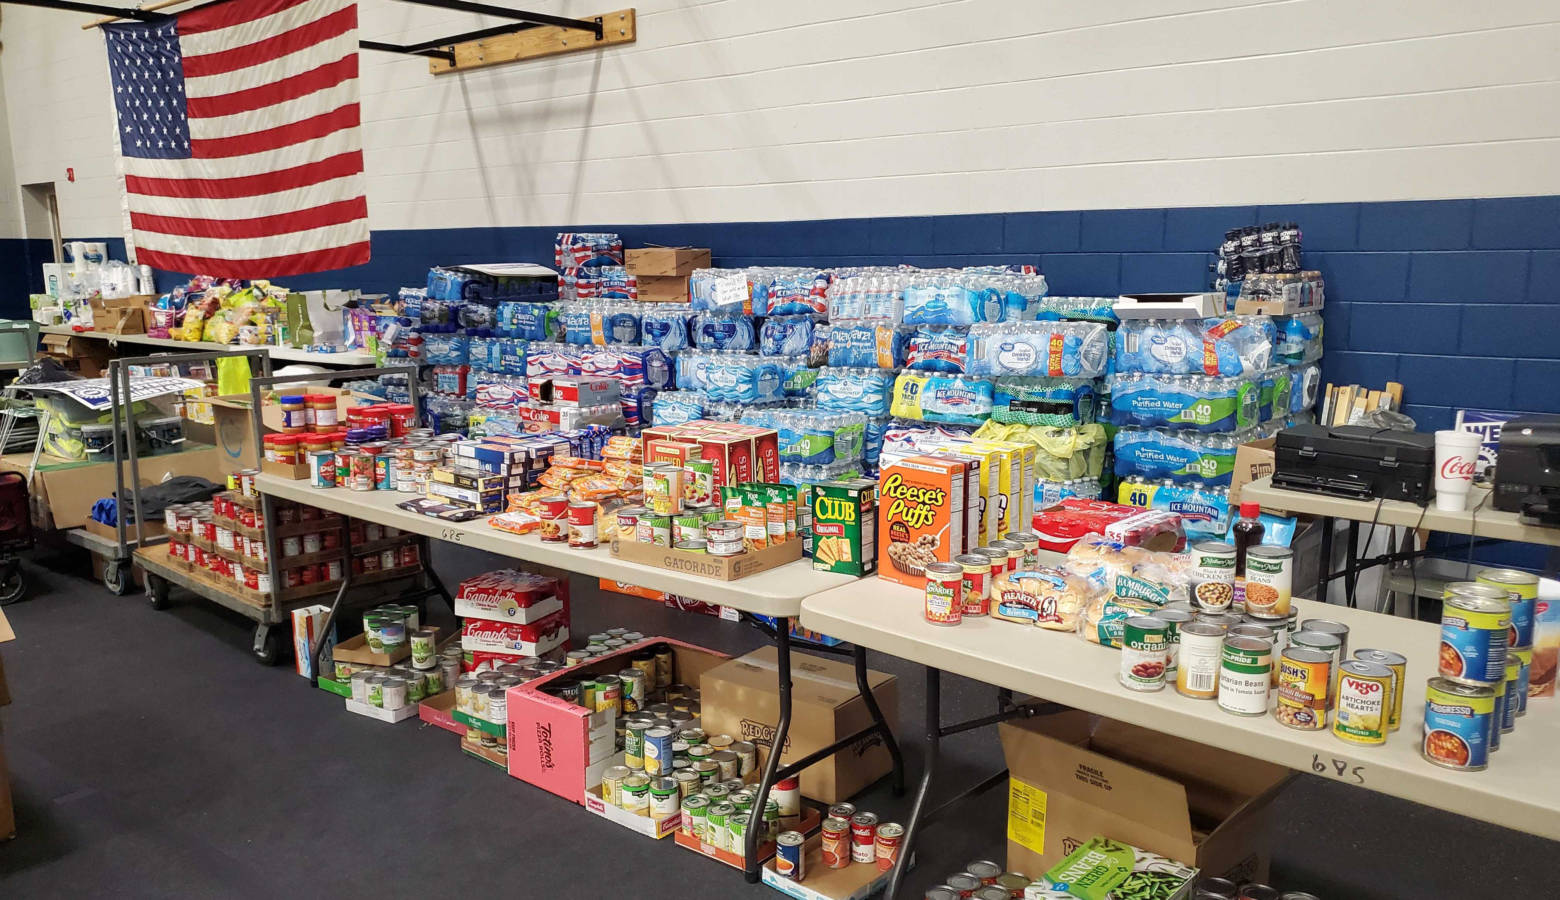 A food pantry is set up in gym of the UAW Local 685 union hall from food donated to help members in need during the strike against General Motors. (Samantha Horton/IPB News)